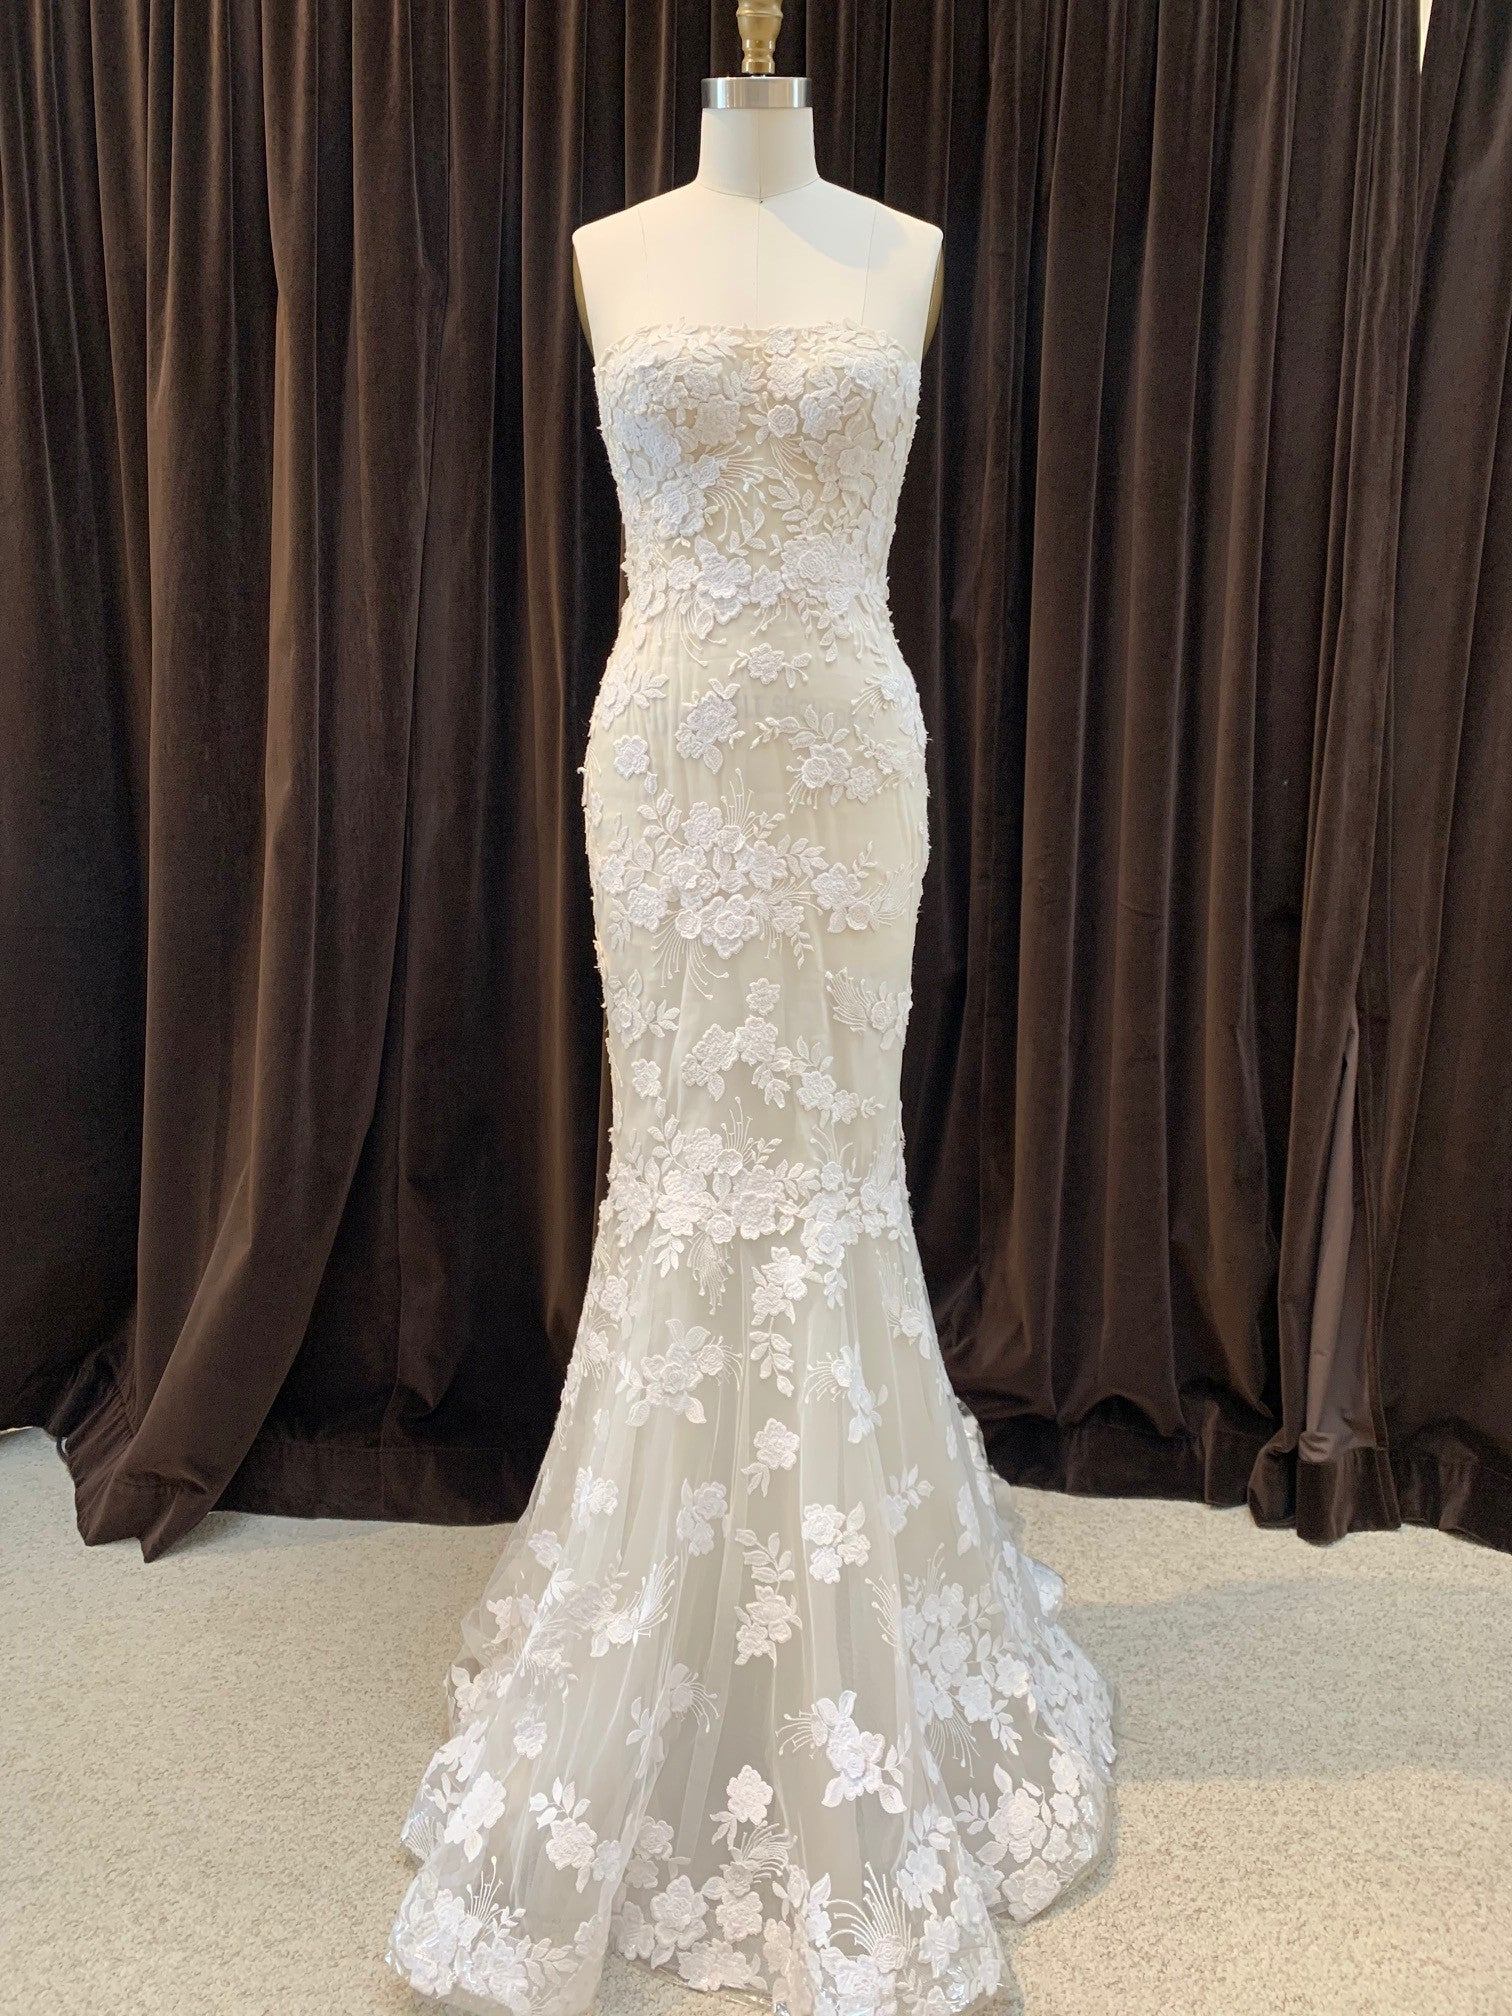 GC#32461 - Mira Zwillinger Fiarra Wedding Gown in Size 8